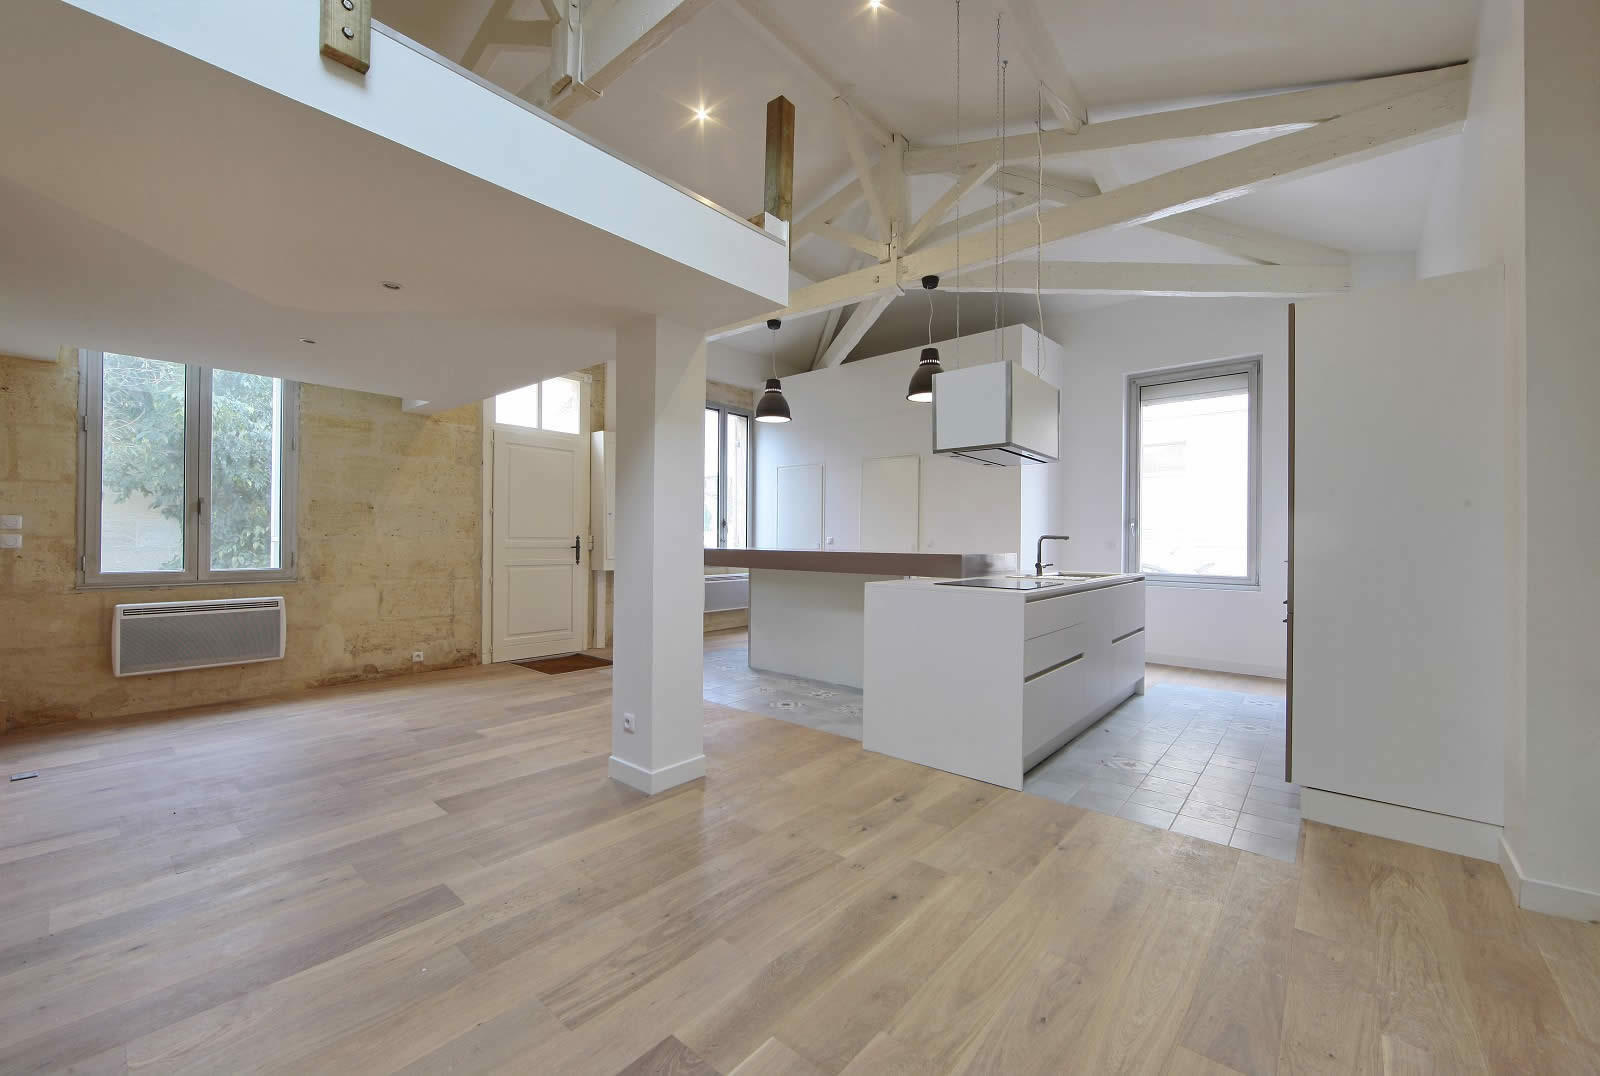 Renovate House With Parquet Floors Exposed Beams And